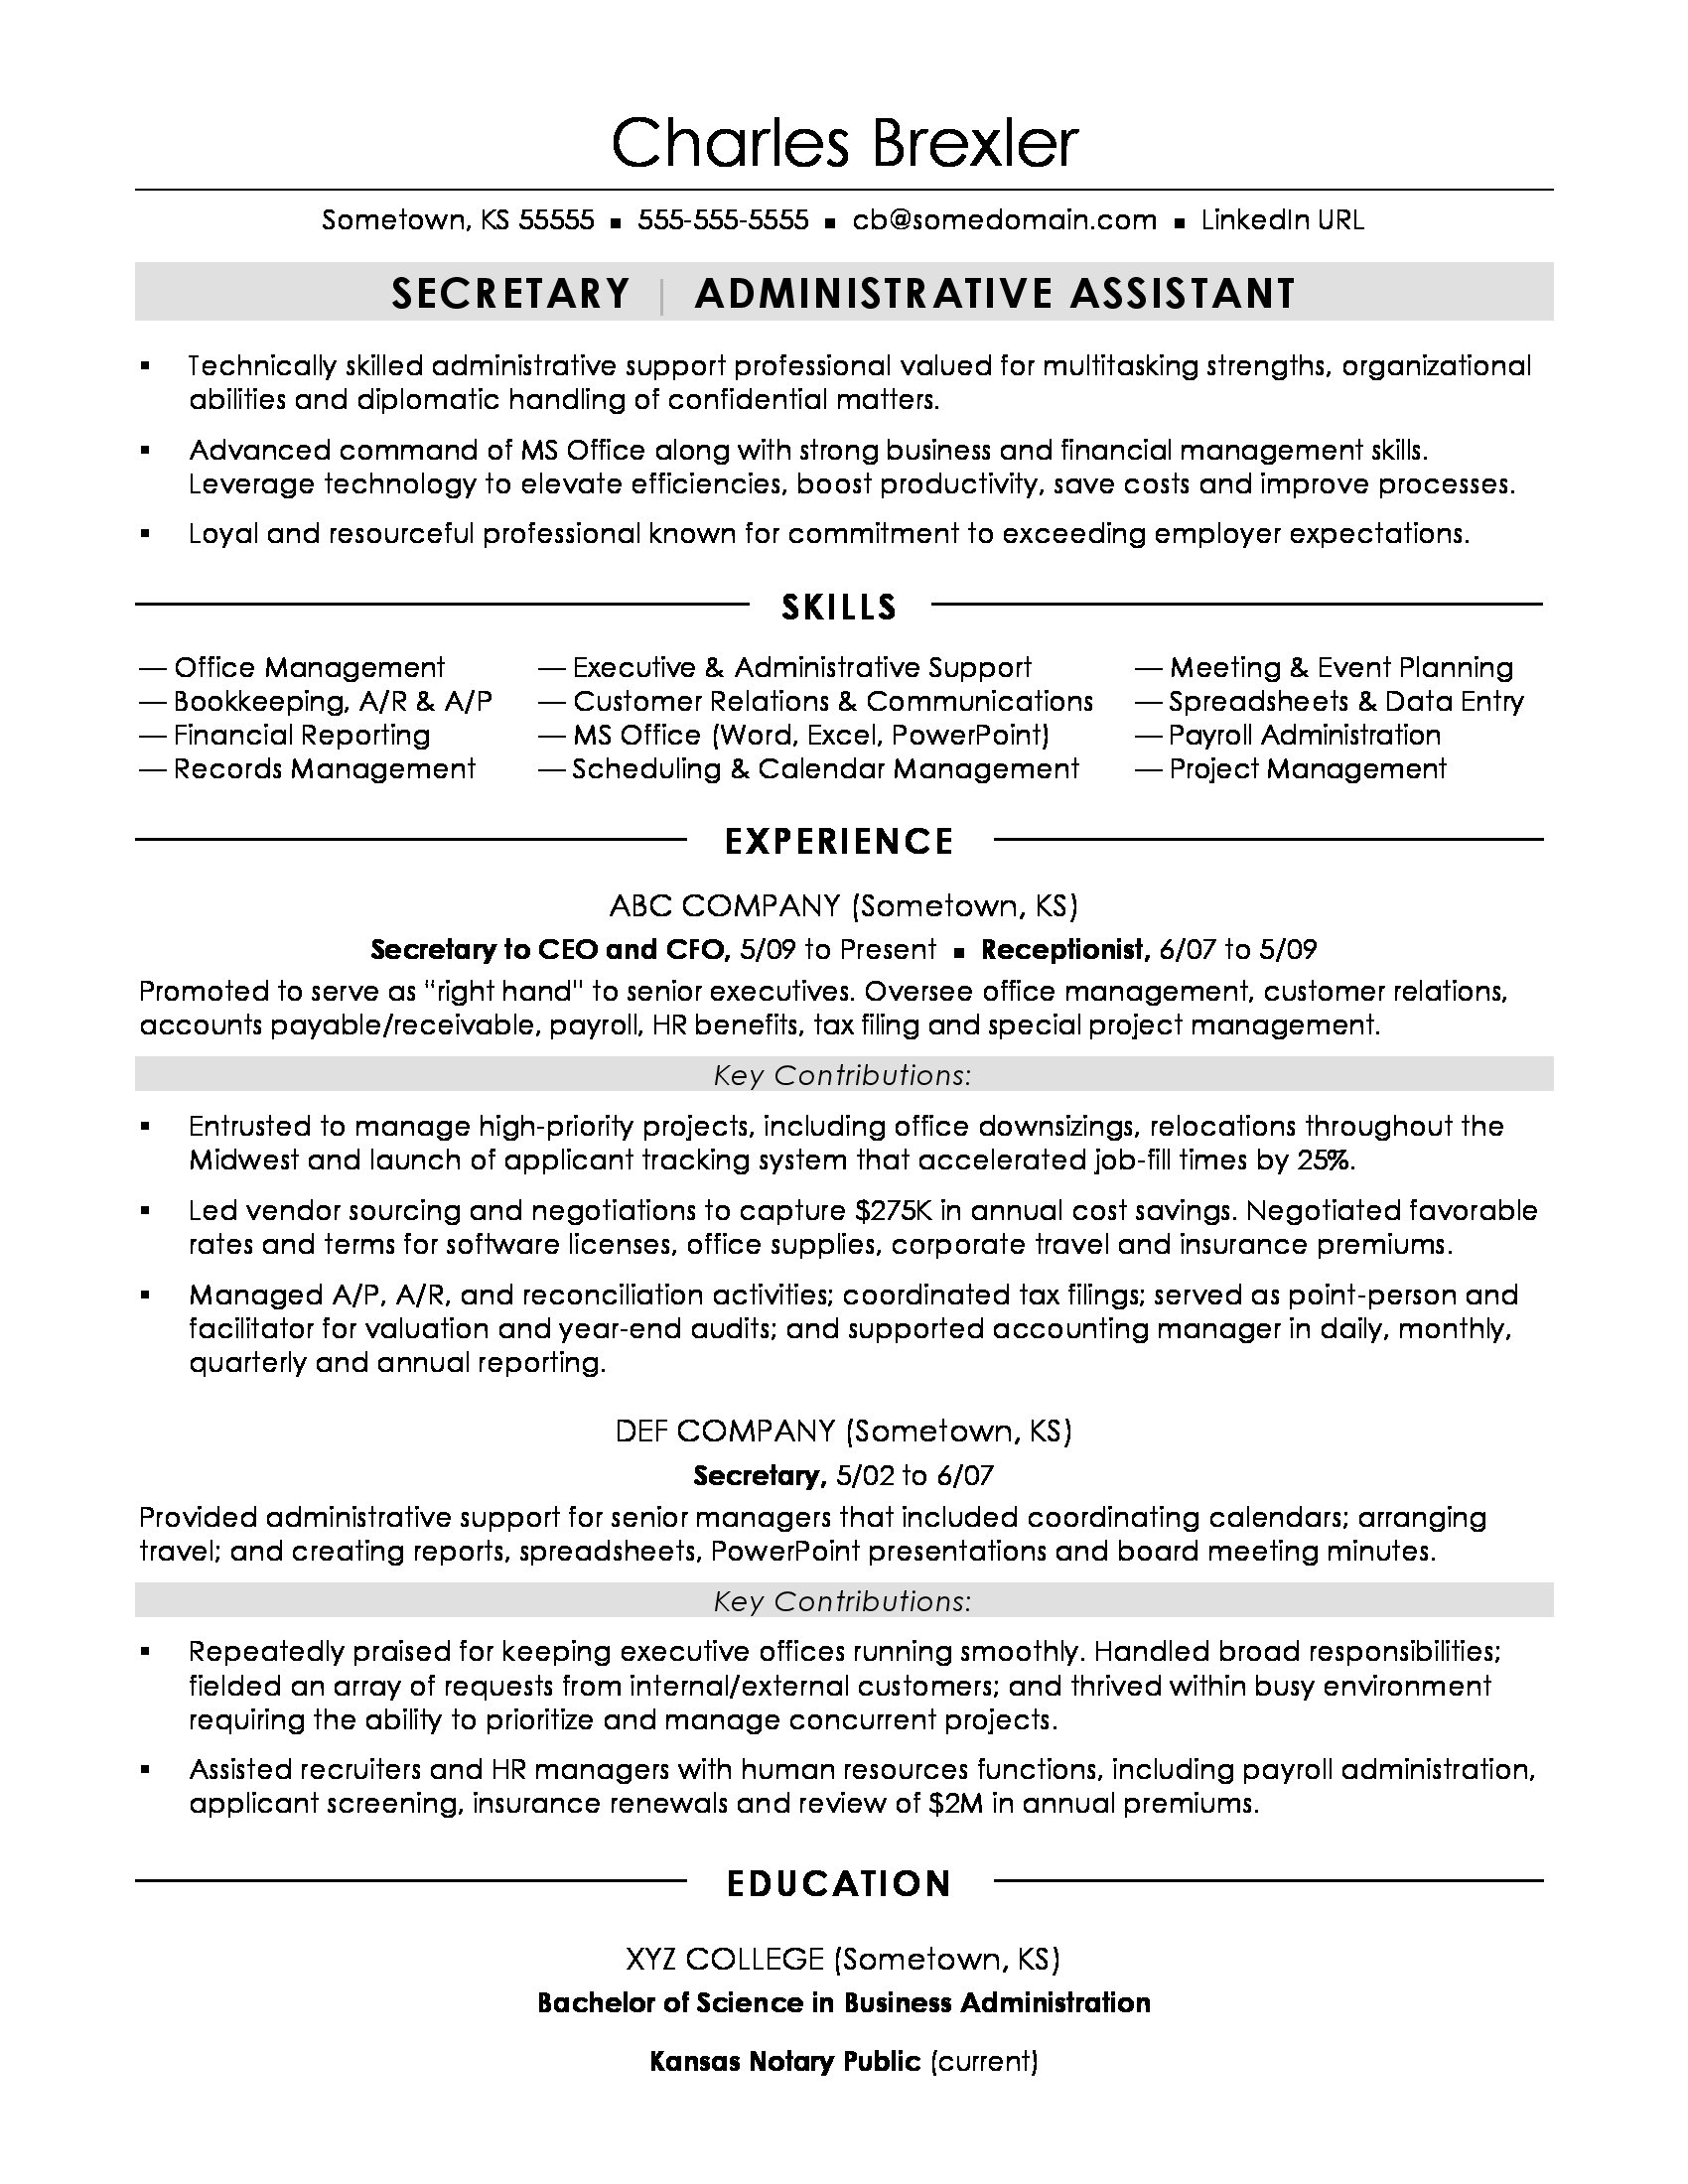 secretary resume sample monster for business administration position novo elon musk prose Resume Resume For Business Administration Position